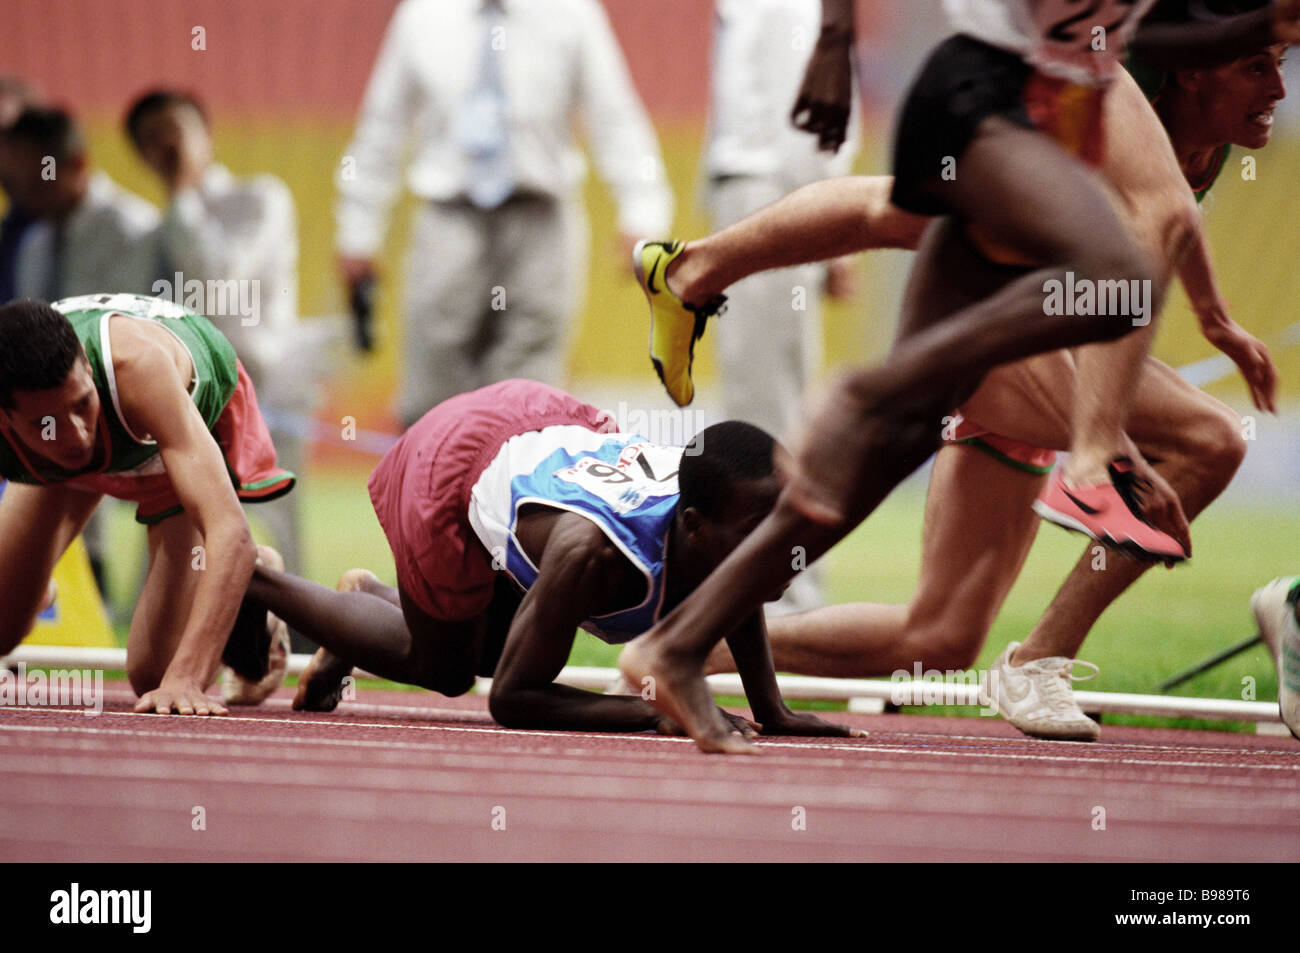 A 1500 meter race competition 100 meters left to the finish - Stock Image